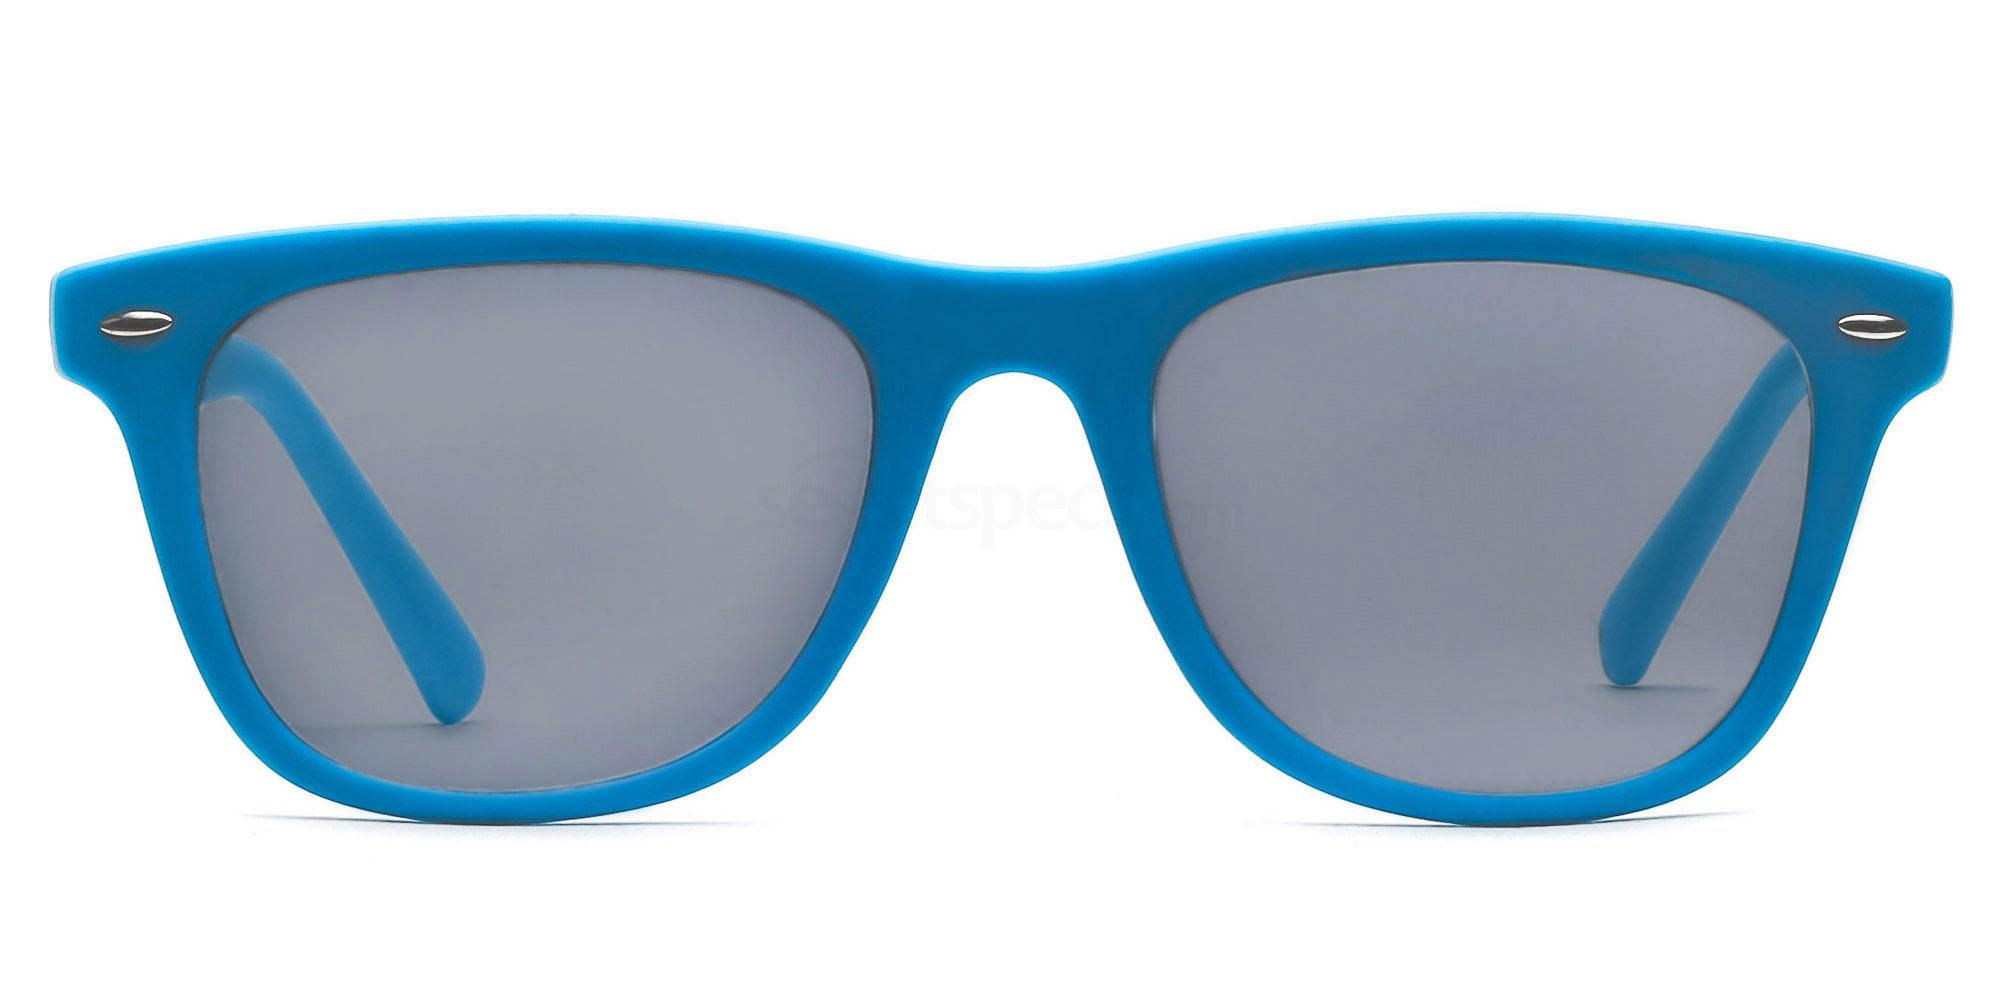 Savannah 8121 sunglasses